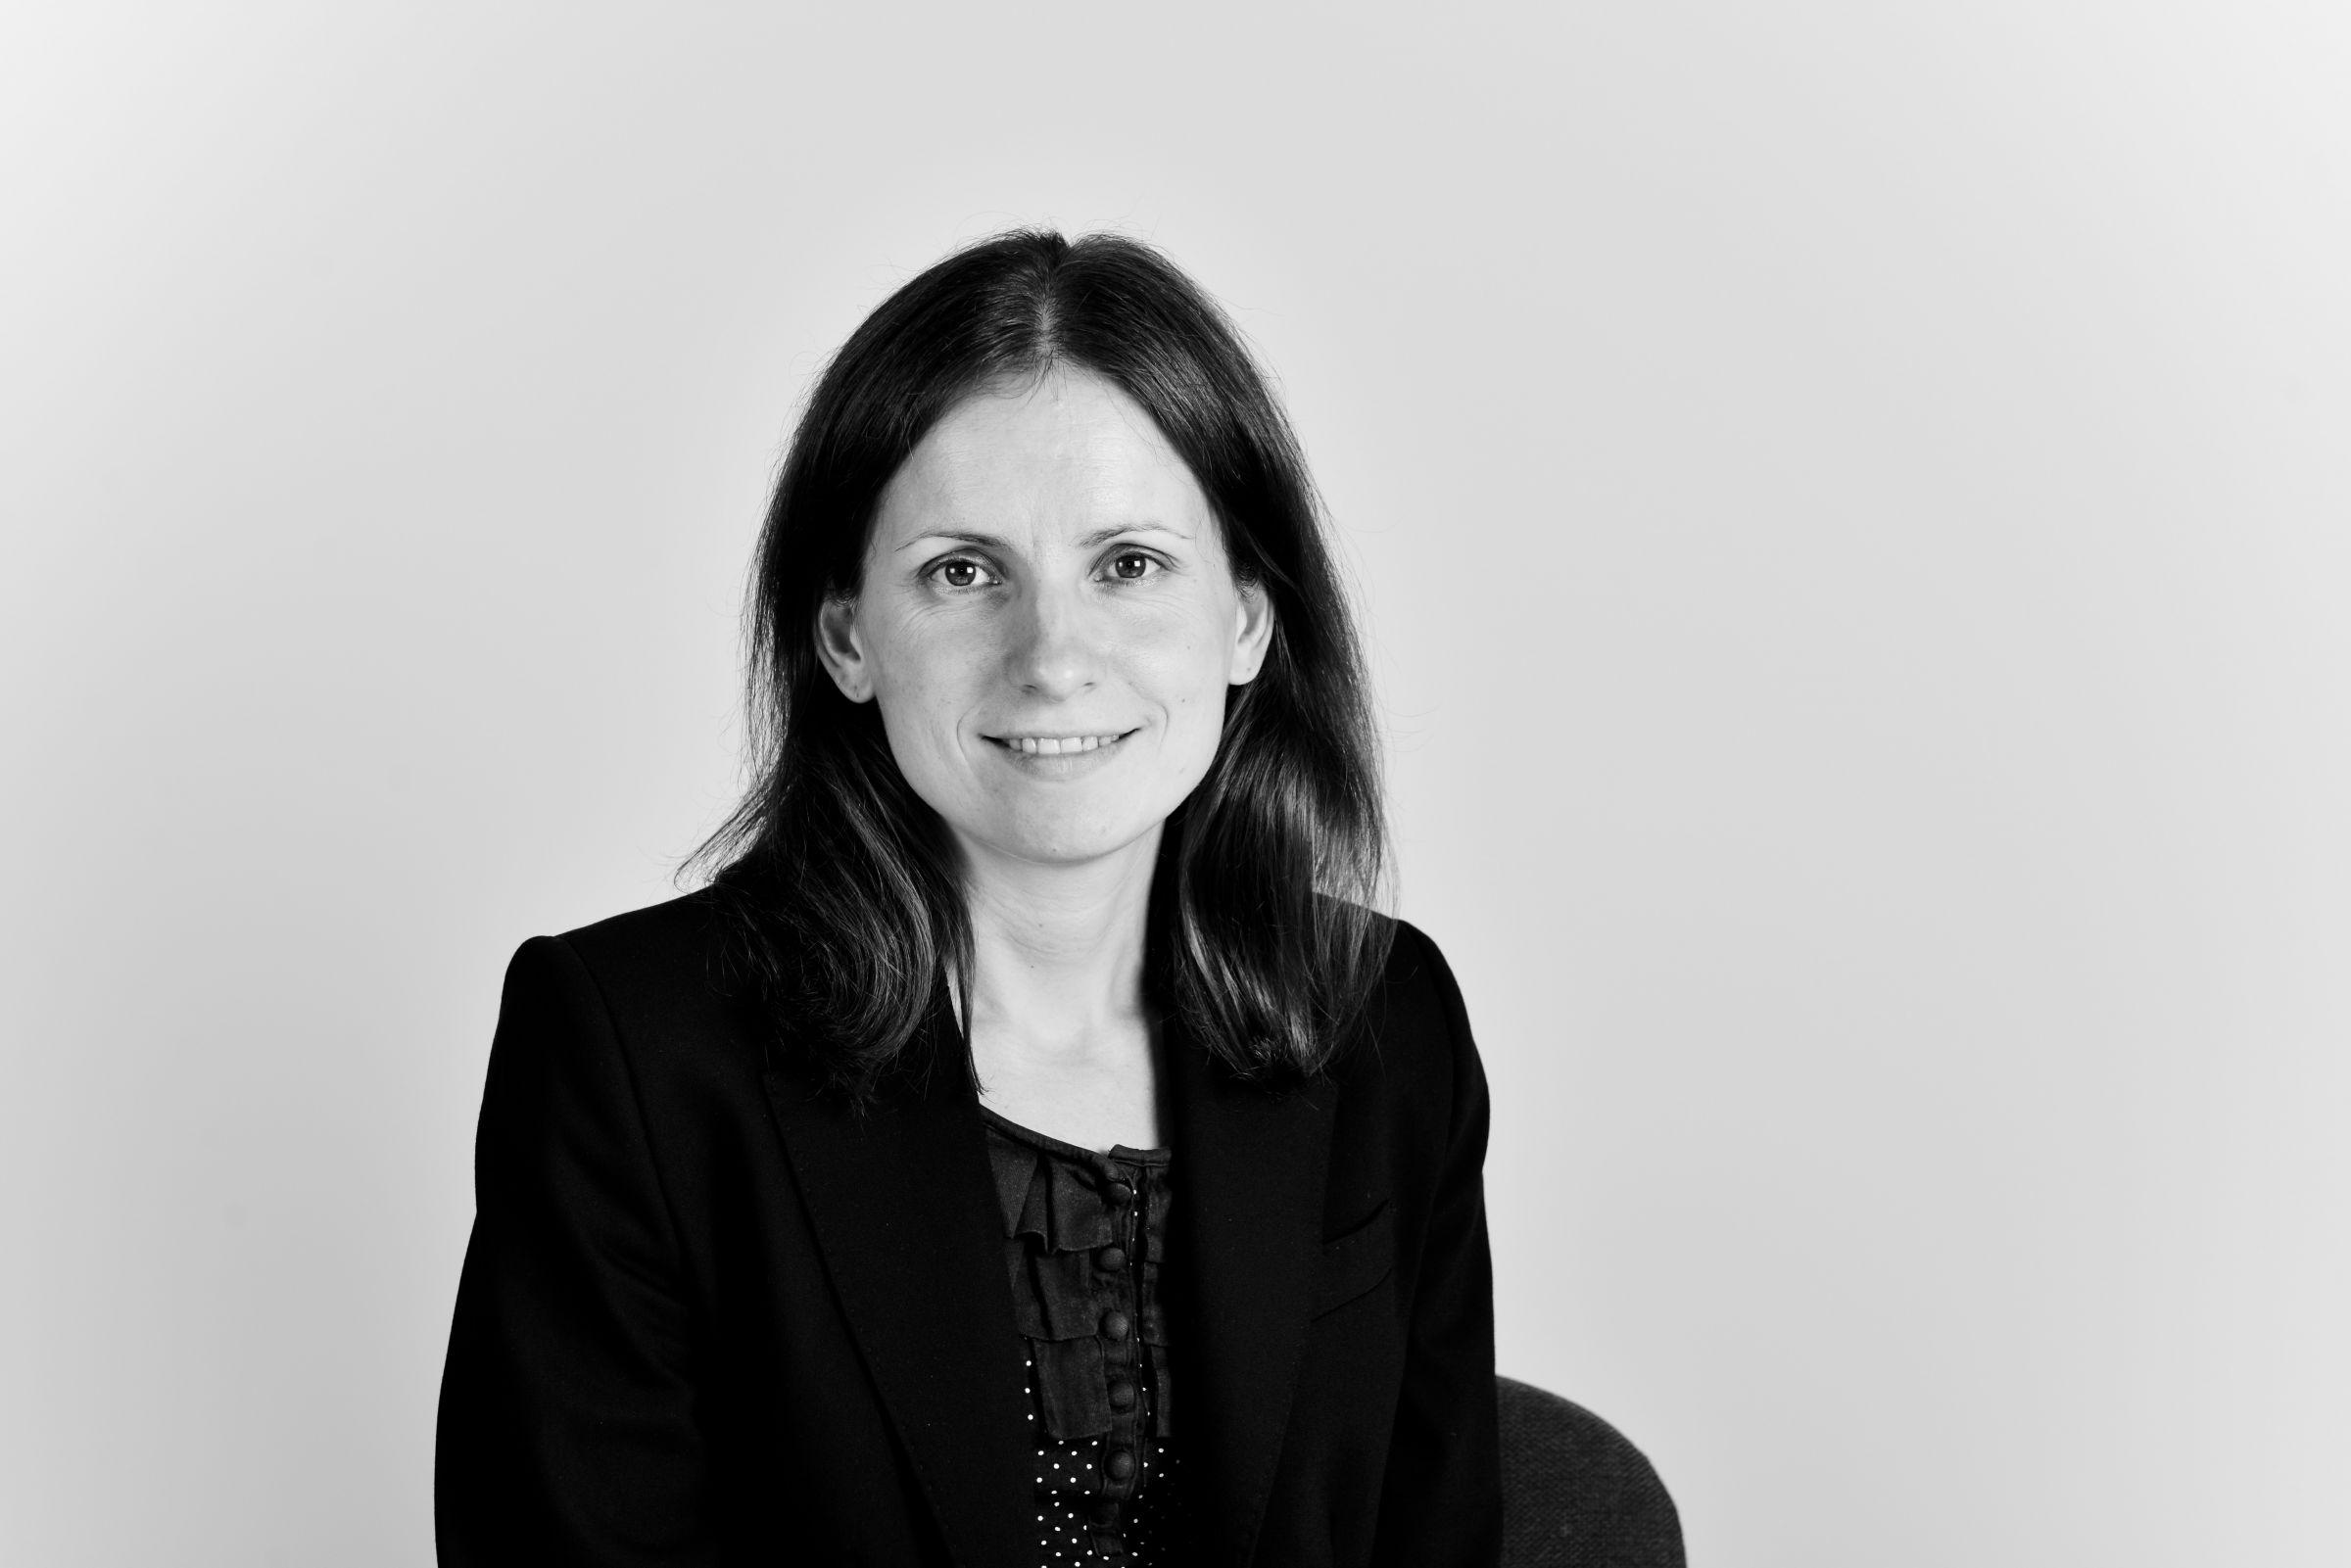 Katie Bray, Head of Projects